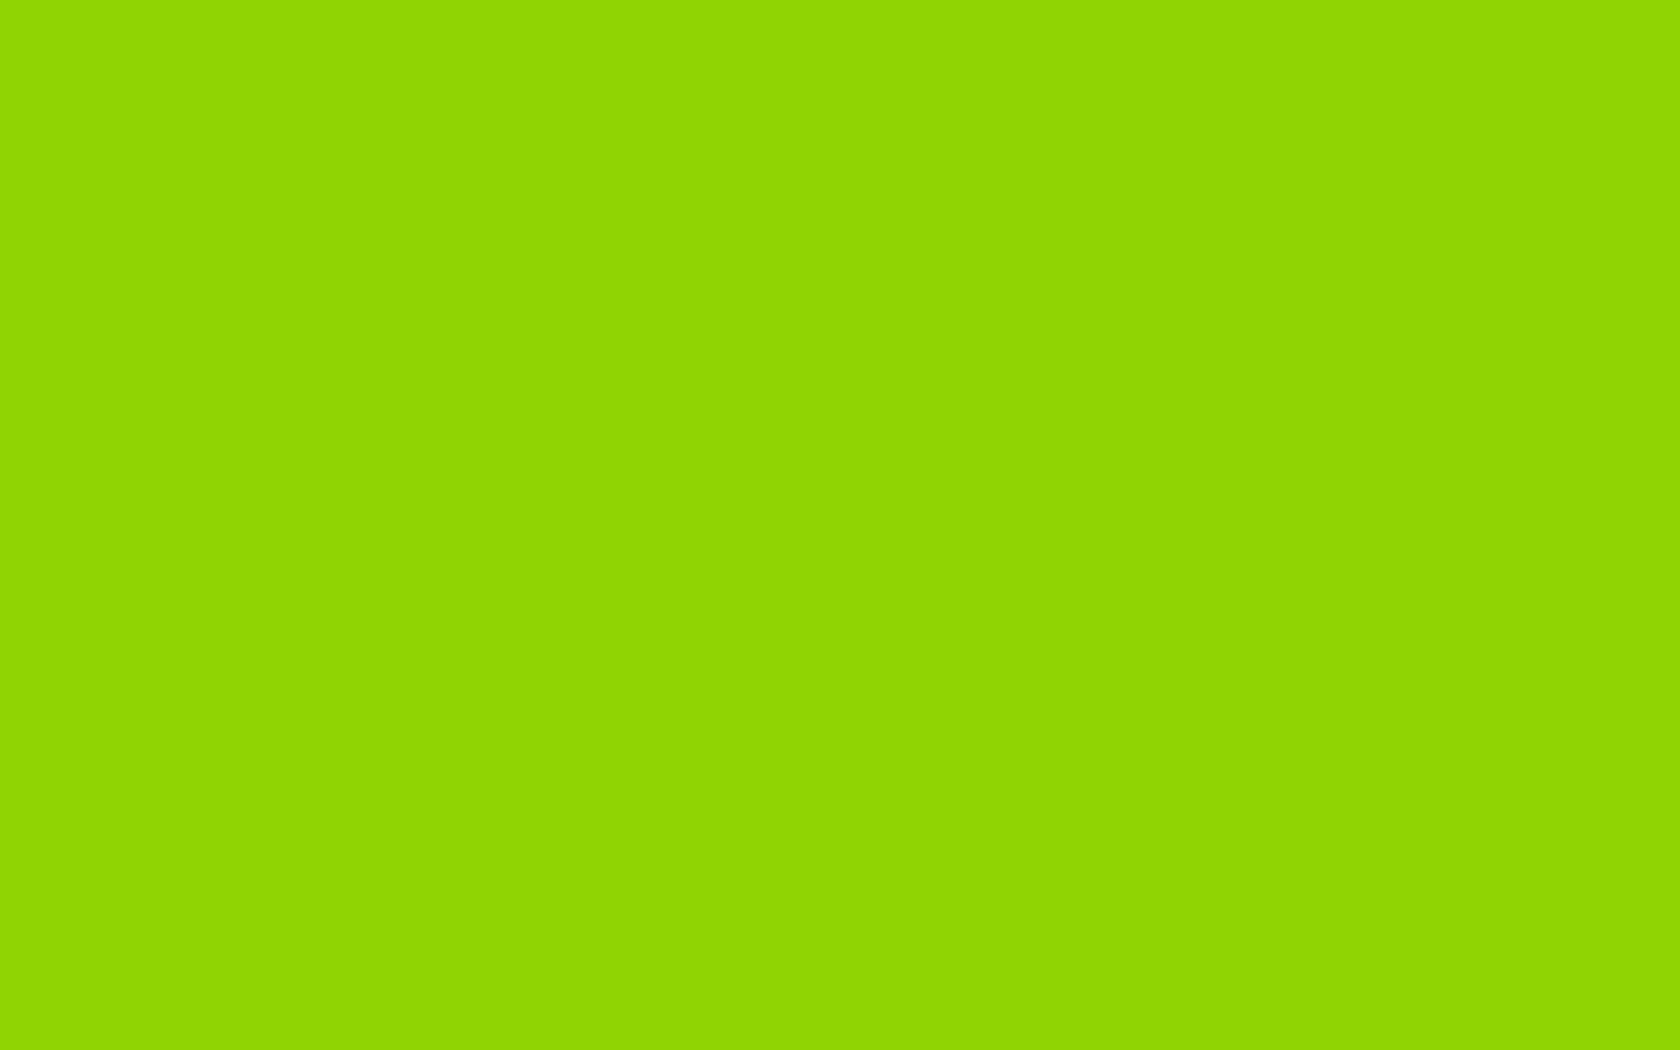 1680x1050 Sheen Green Solid Color Background